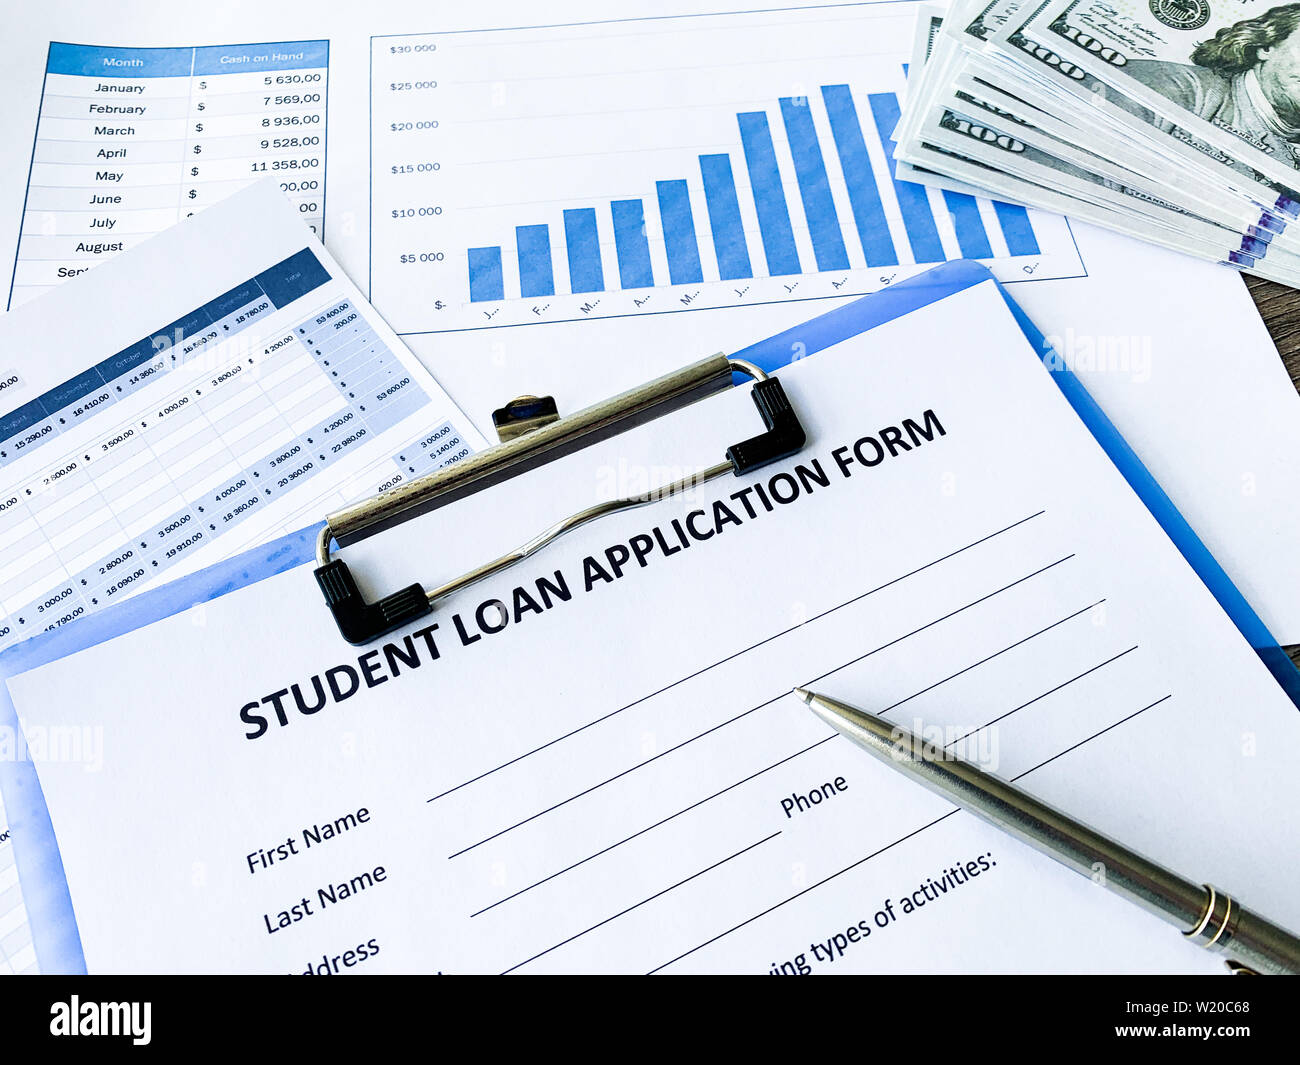 Student loan application form document on table Stock Photo